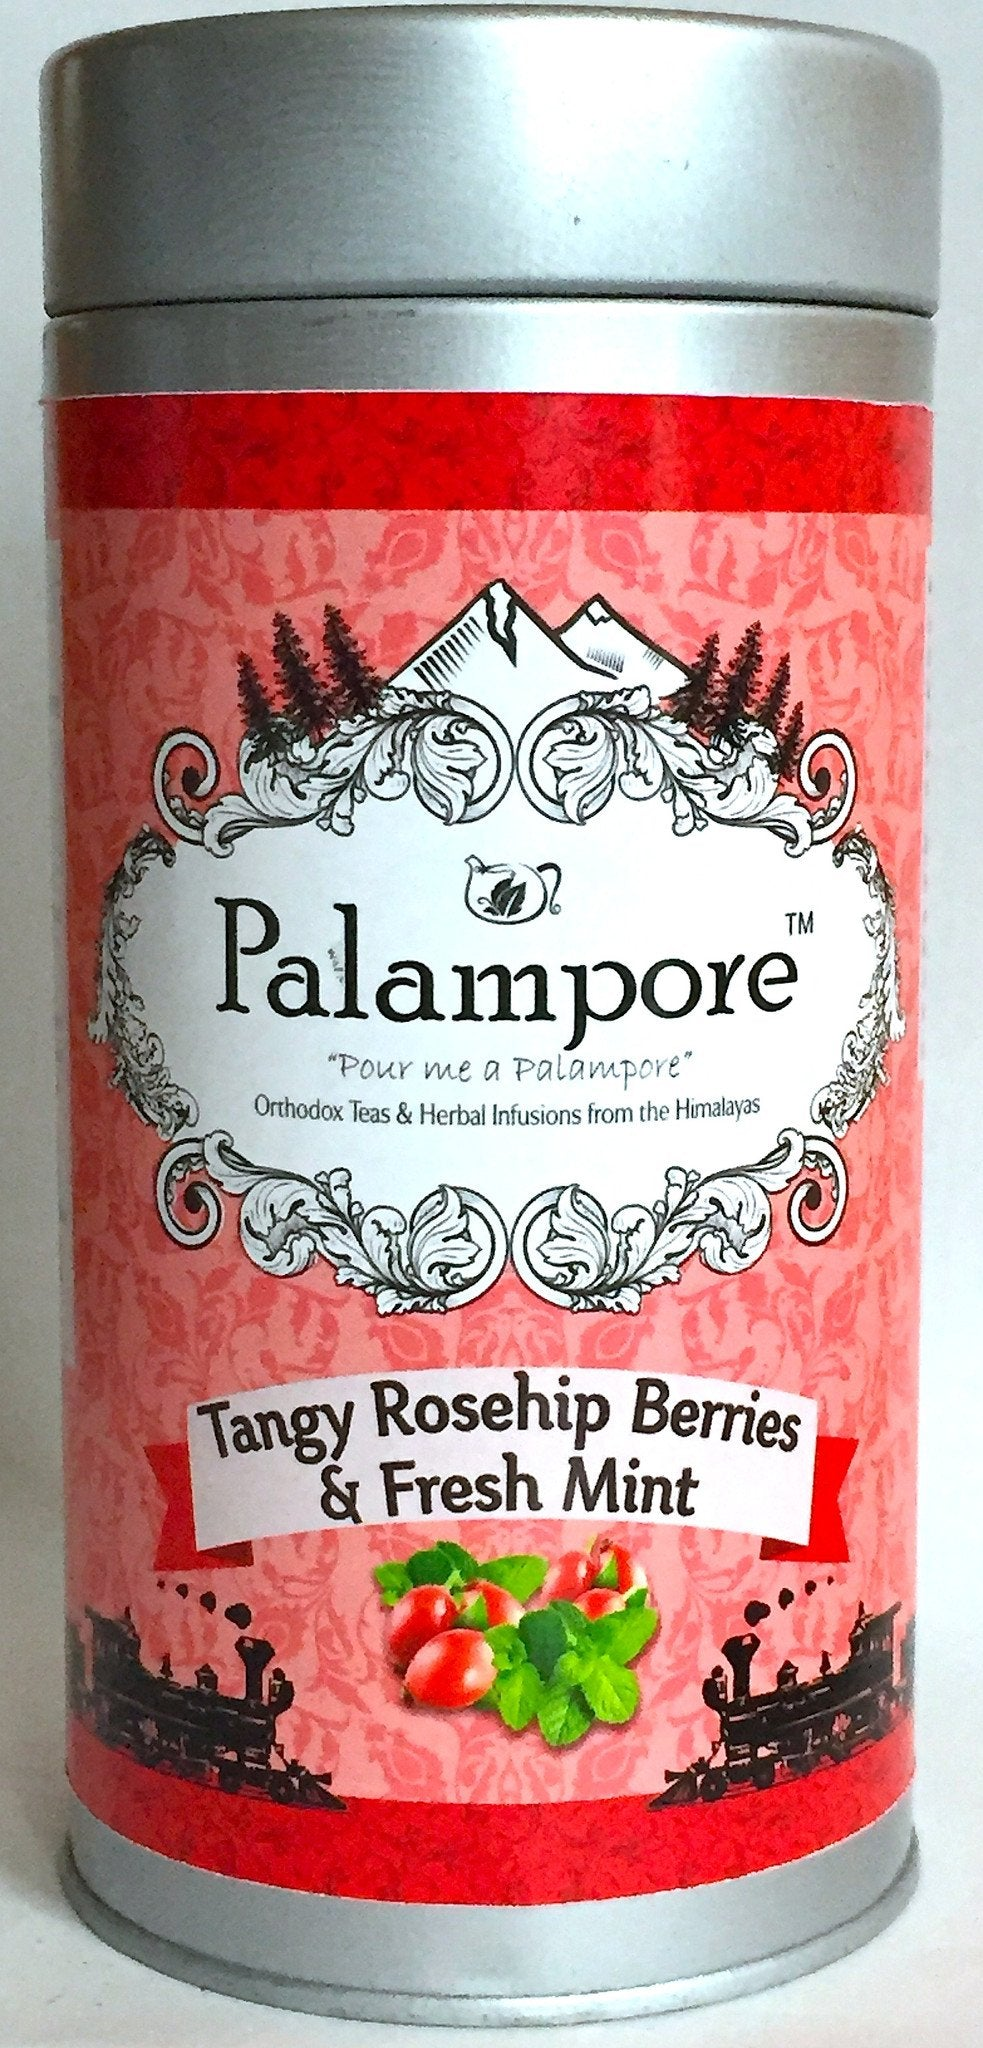 PALAMPORE- TANGY ROSEHIP BERRIES & FRESH MINT